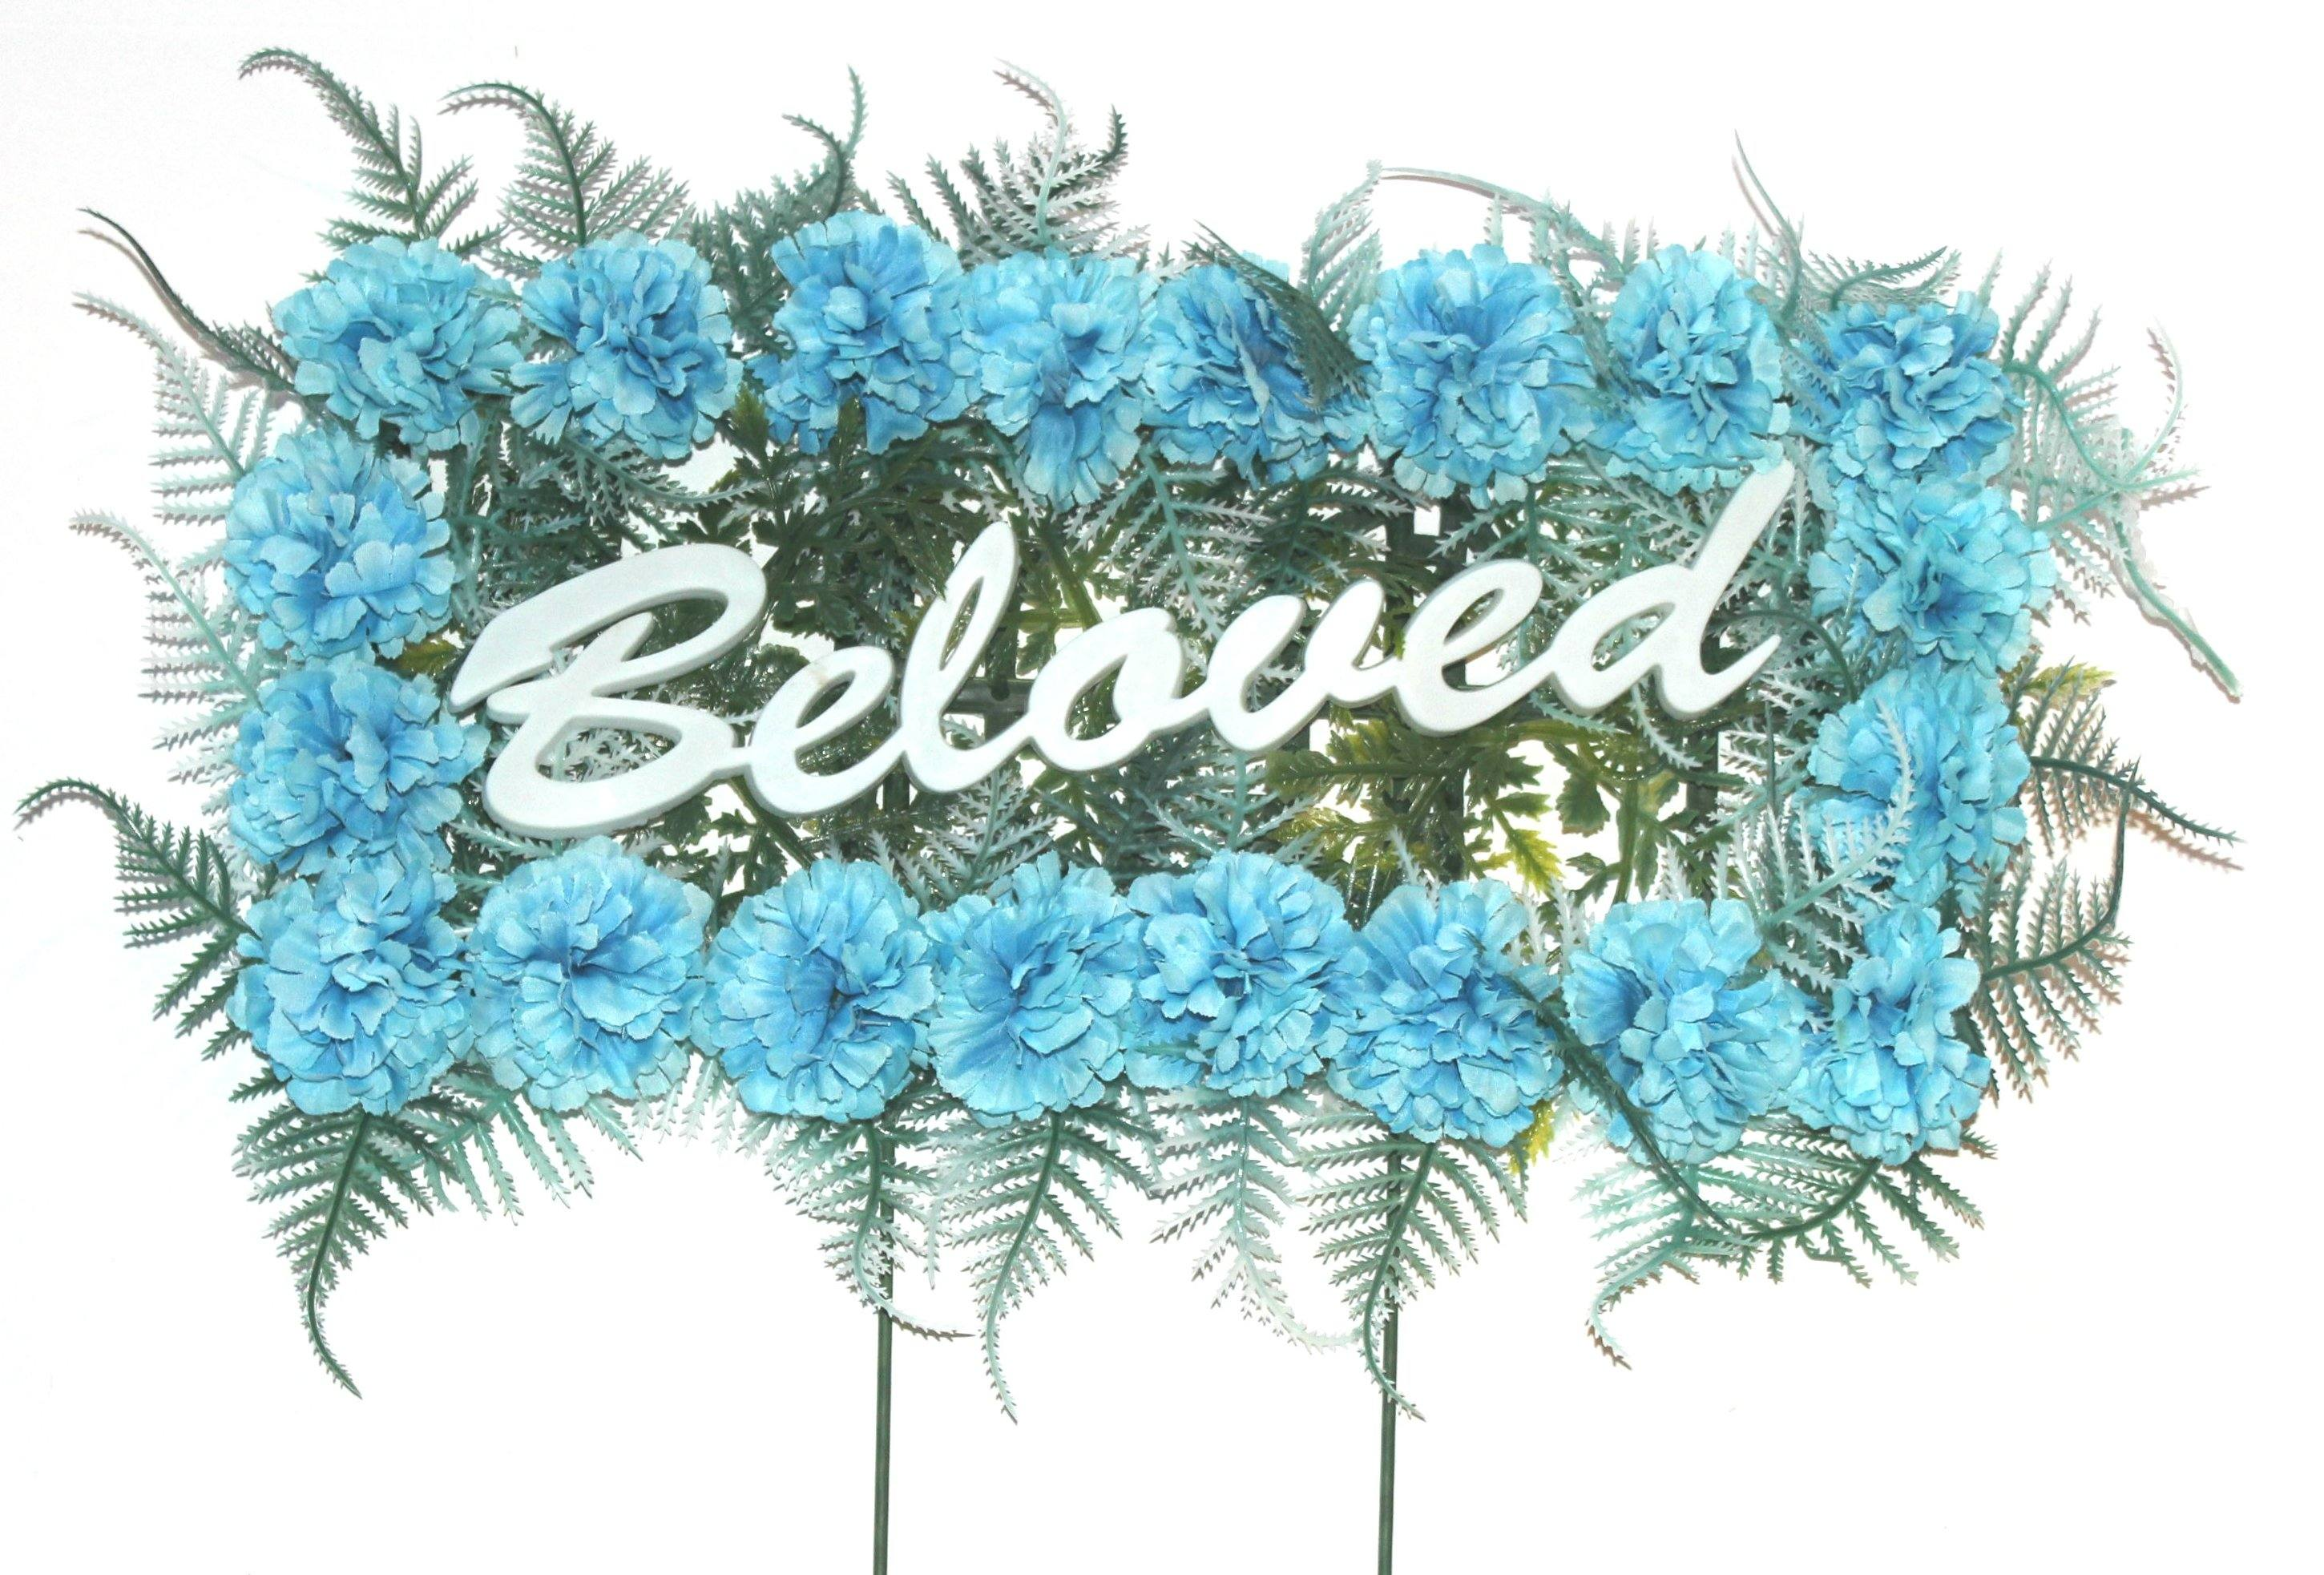 Beloved pillow with blue silk flowers 18 inches izmirmasajfo